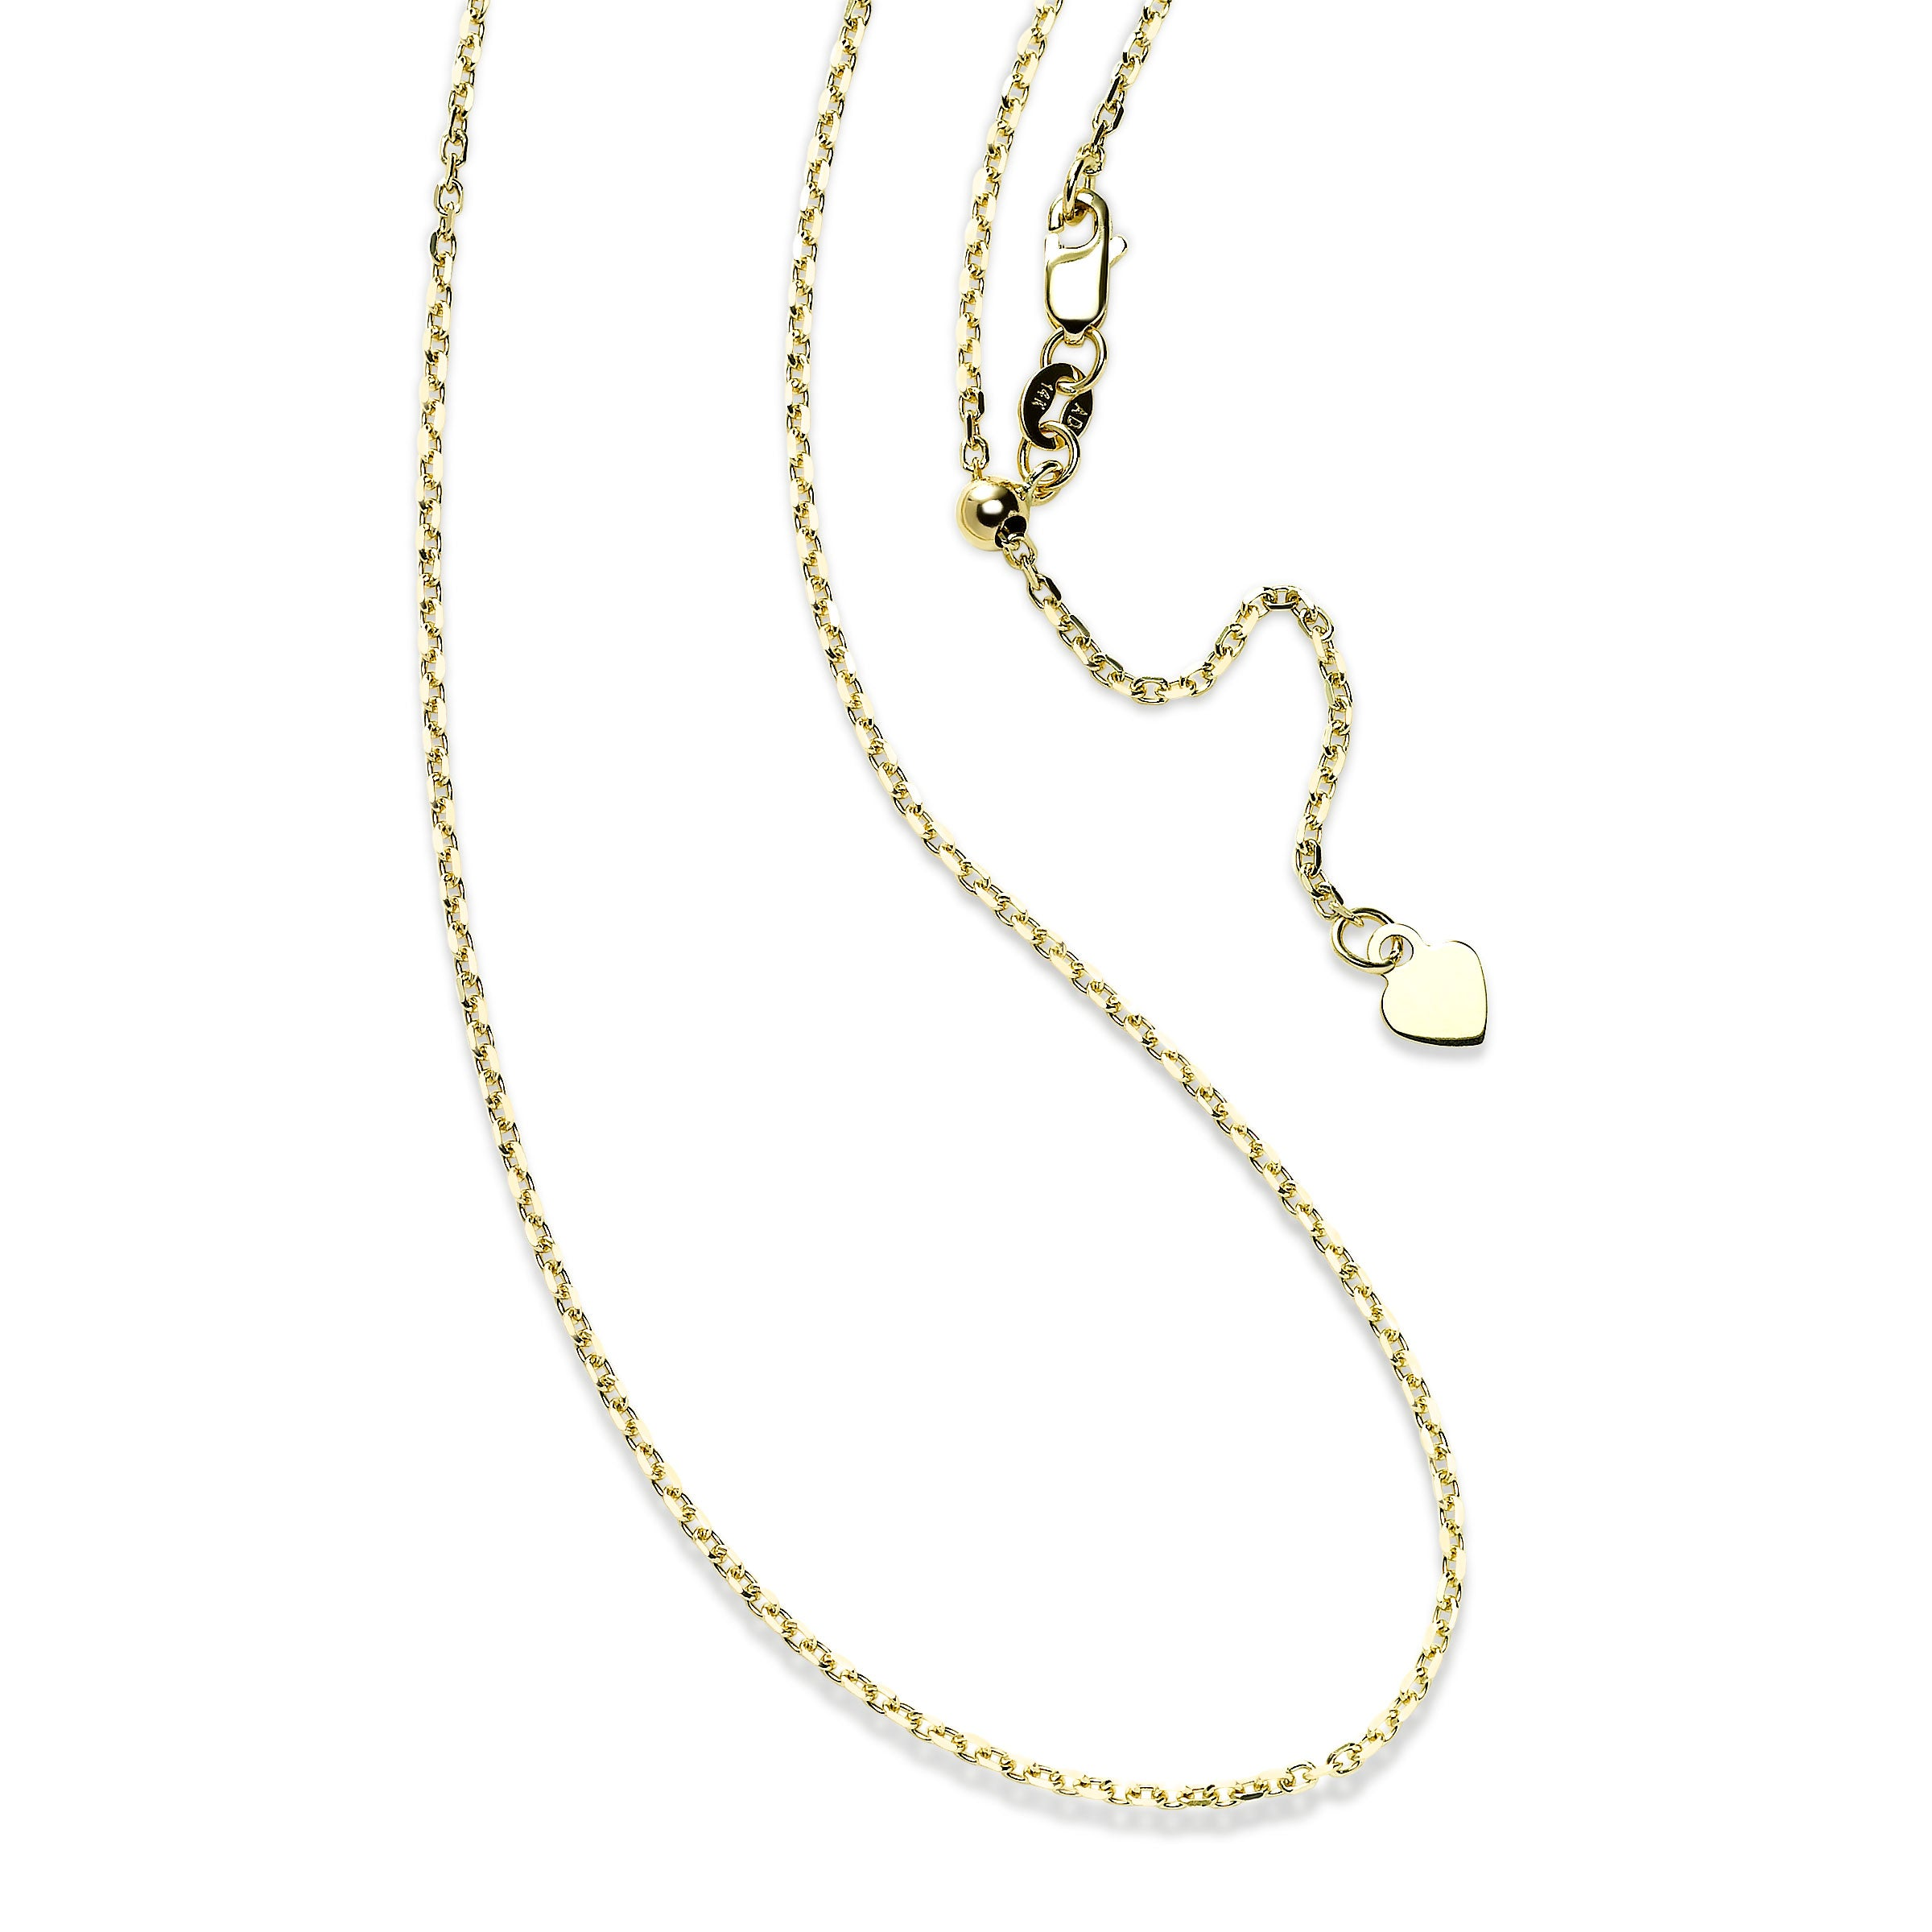 Adjustable Cable Chain with Heart Dangle, 24 Inches, 14K Yellow Gold